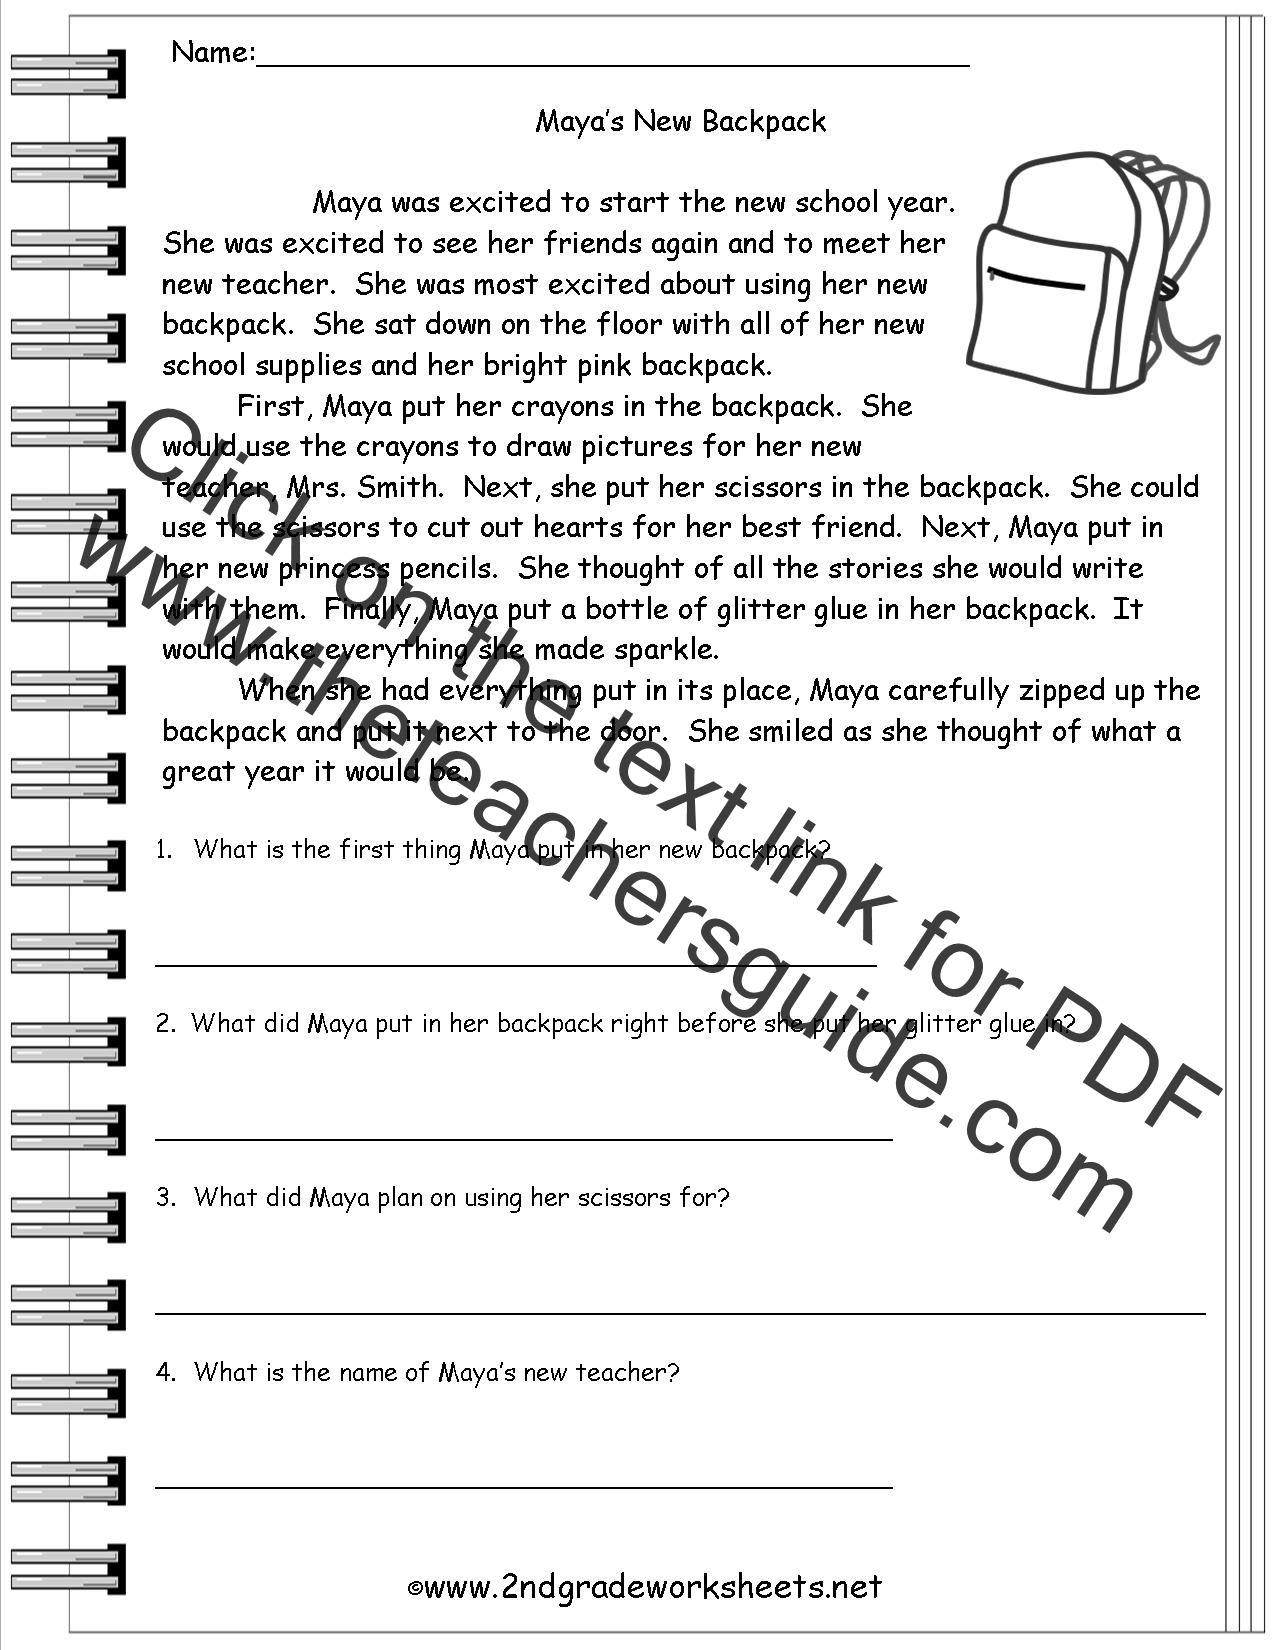 Worksheet Second Grade Comprehension Passages reading worksheeets literature worksheets